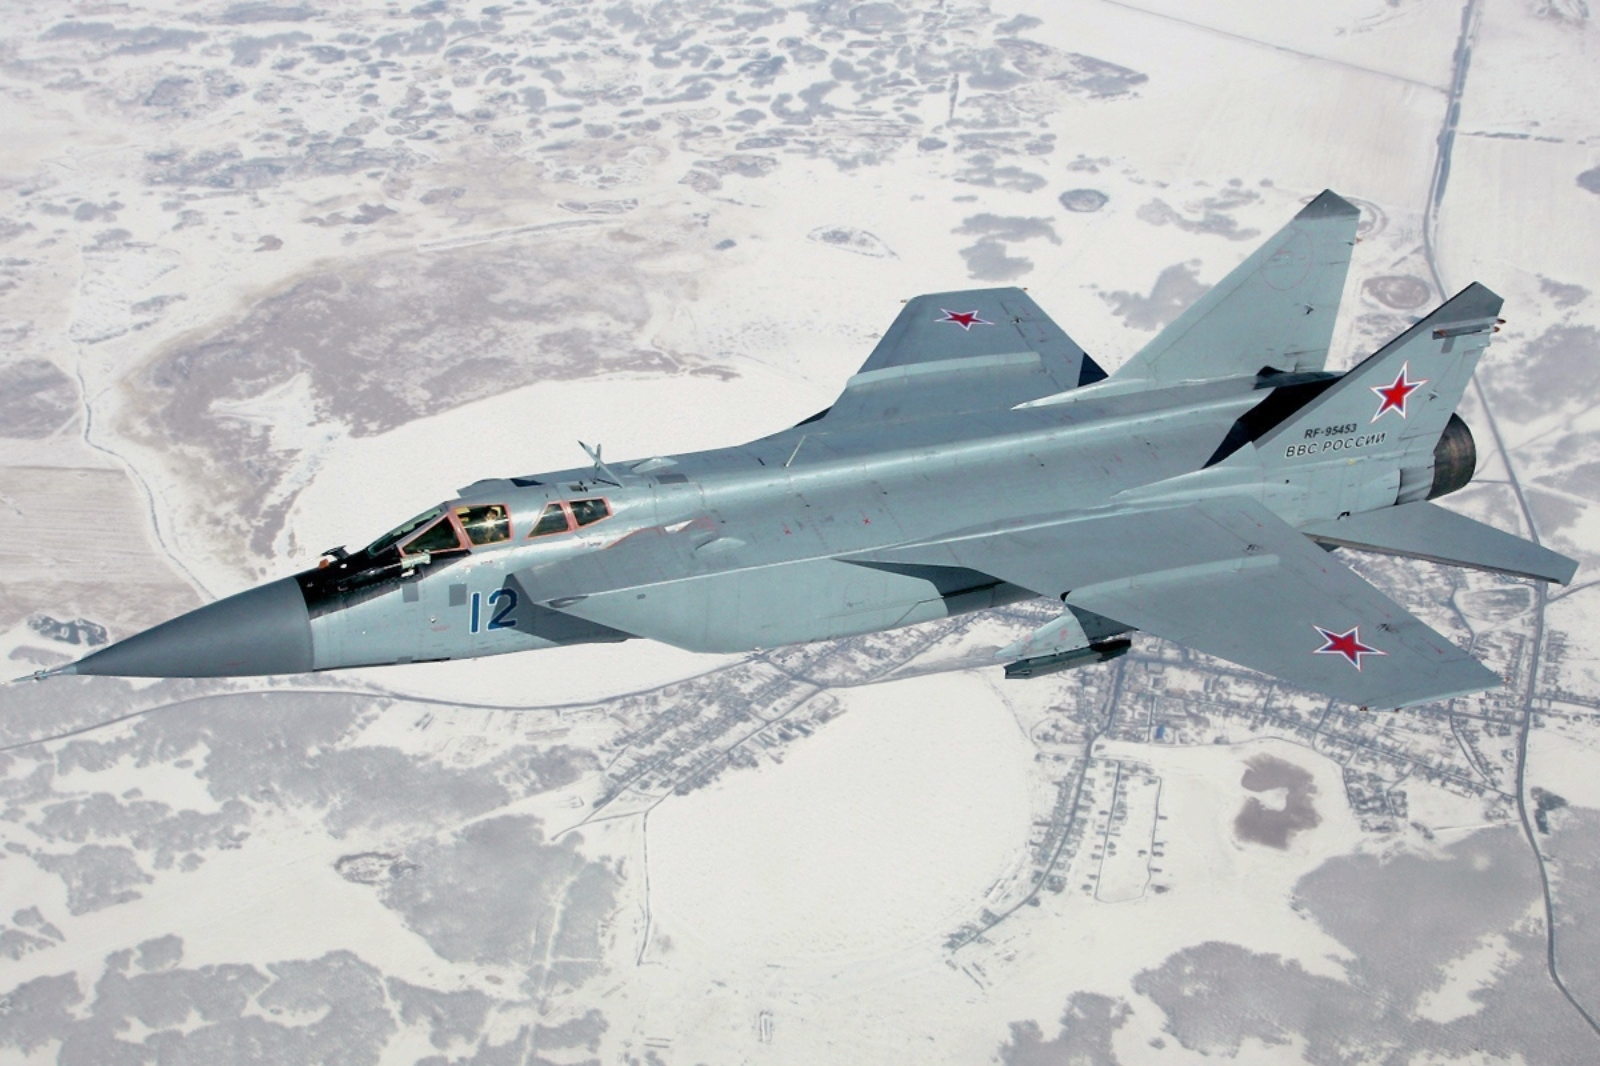 https://upload.wikimedia.org/wikipedia/commons/3/38/Russian_Air_Force_Mikoyan-Gurevich_MiG-31P.jpg